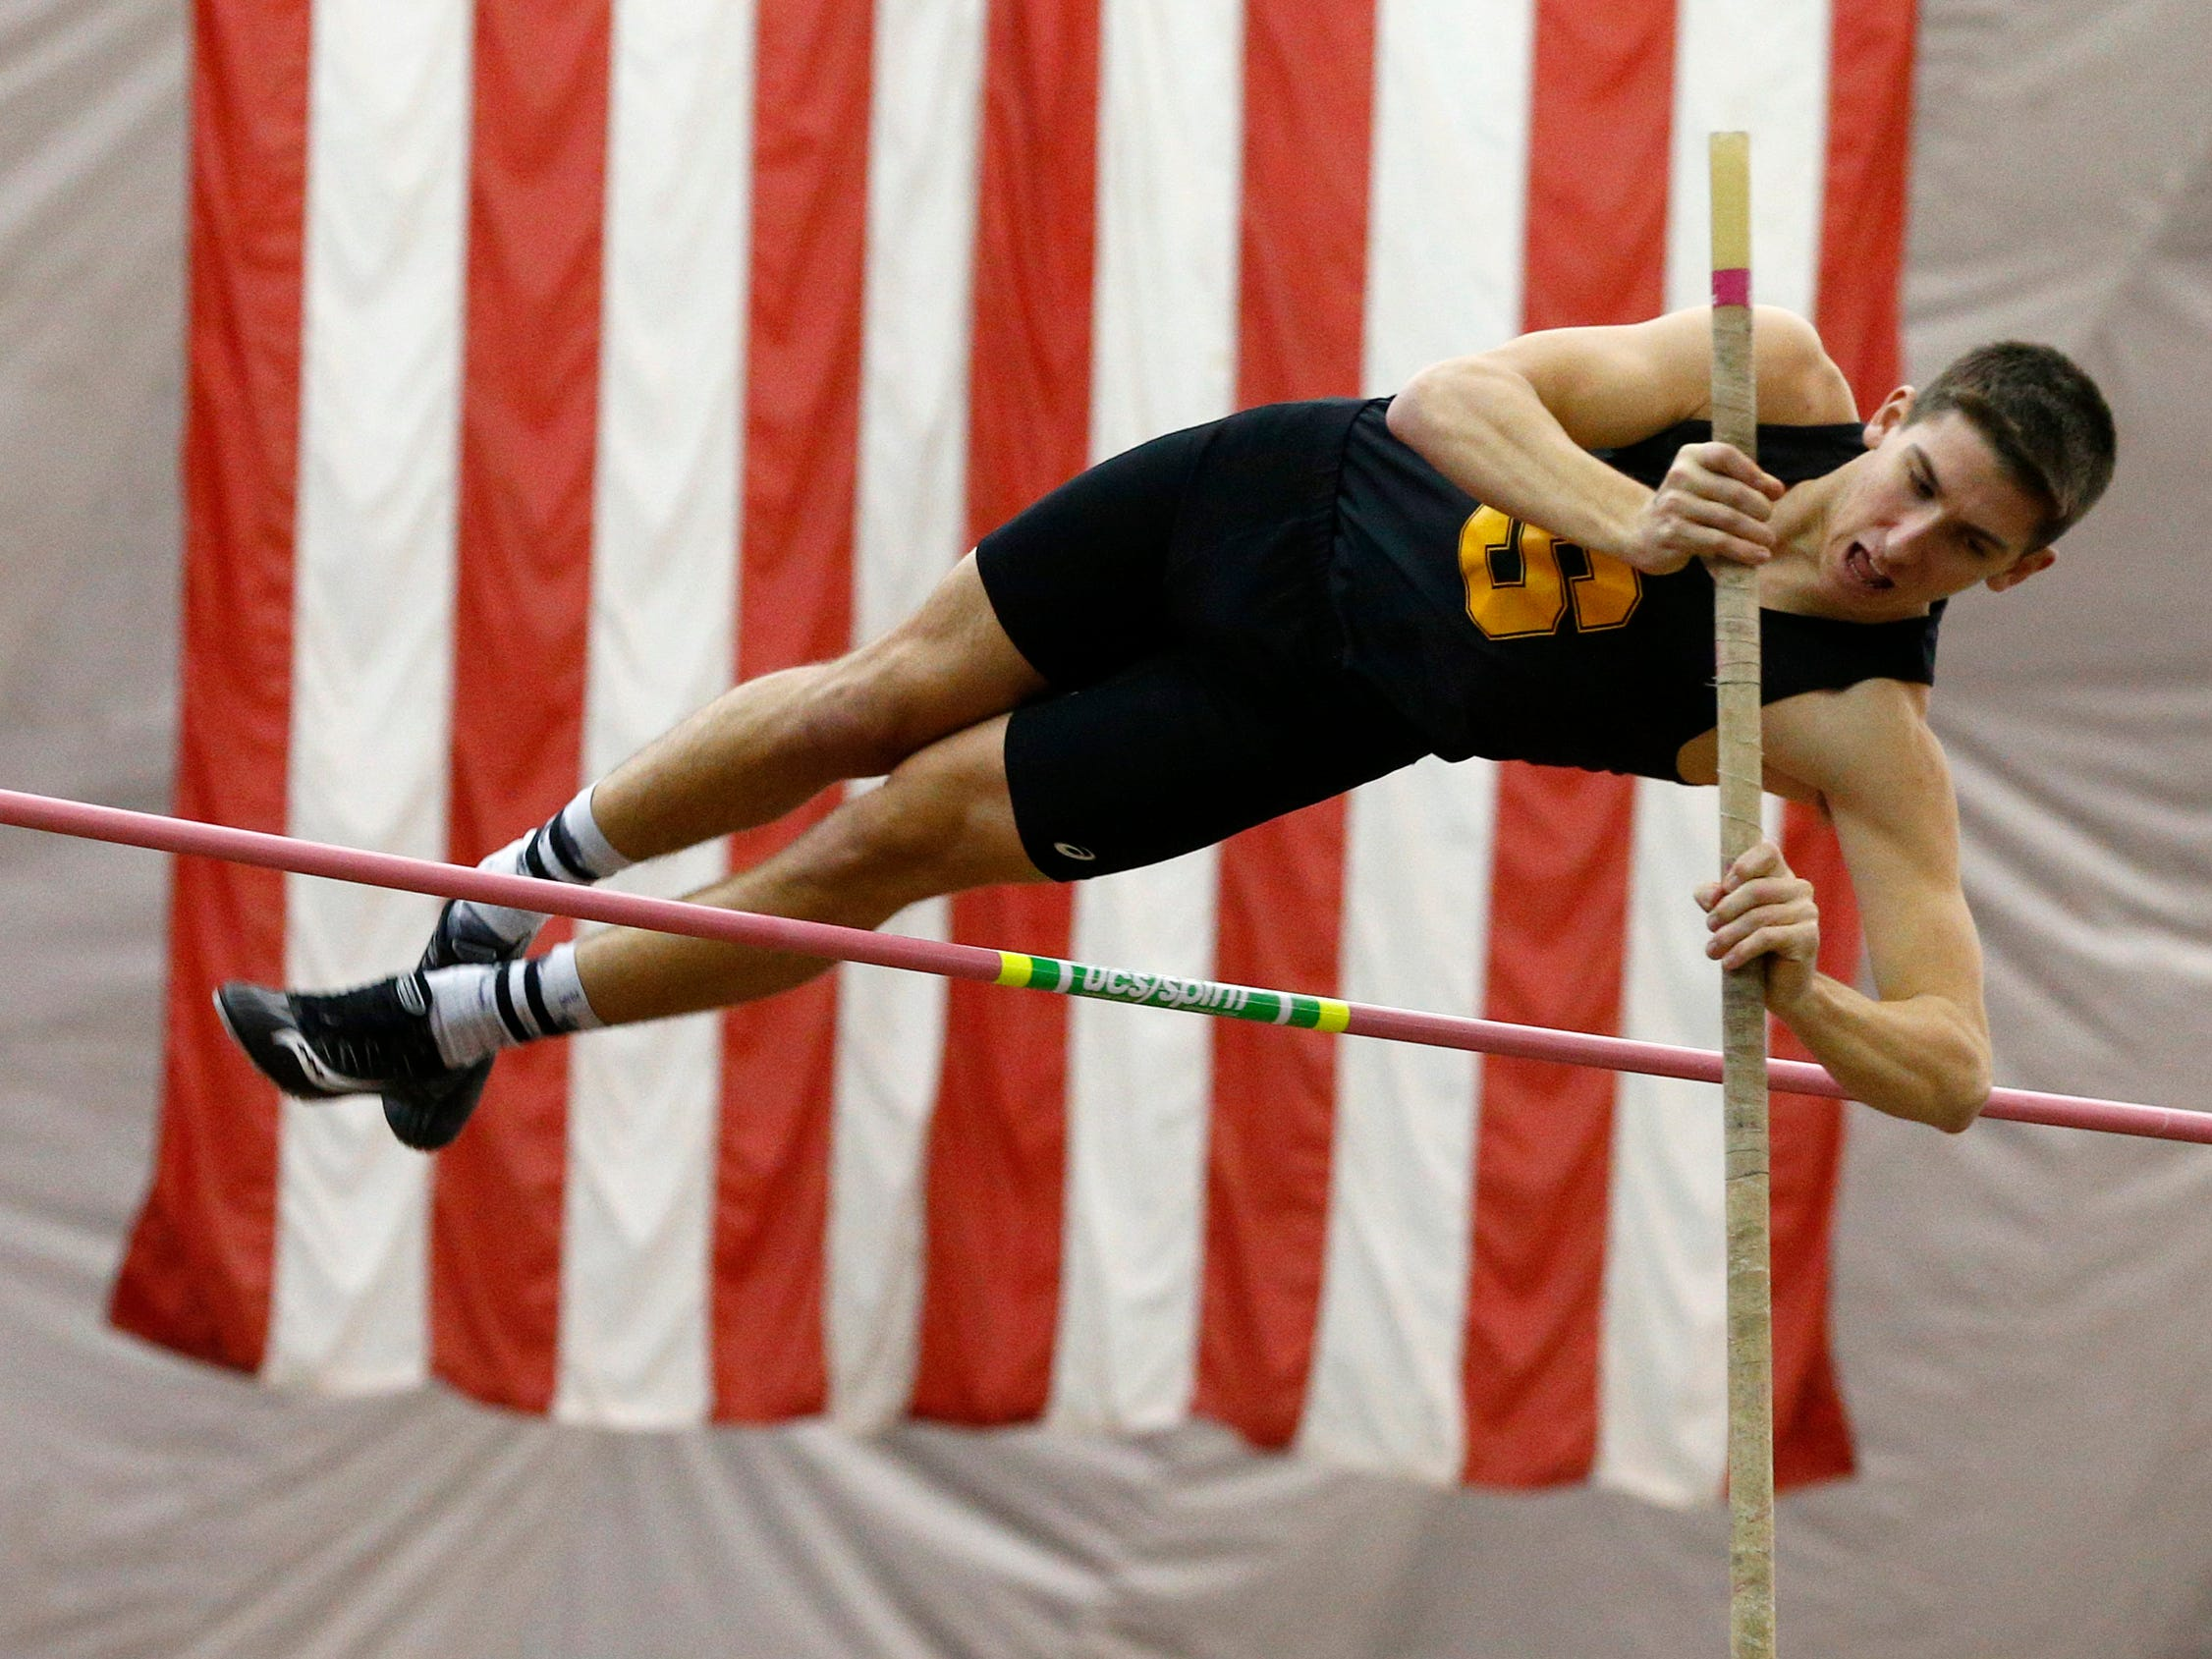 Southern Regional's David Spingstead competes in the pole vault during the Ocean County Indoor Track Championships at the Bennett Indoor Complex in Toms River Wednesday, January 9th, 2019.